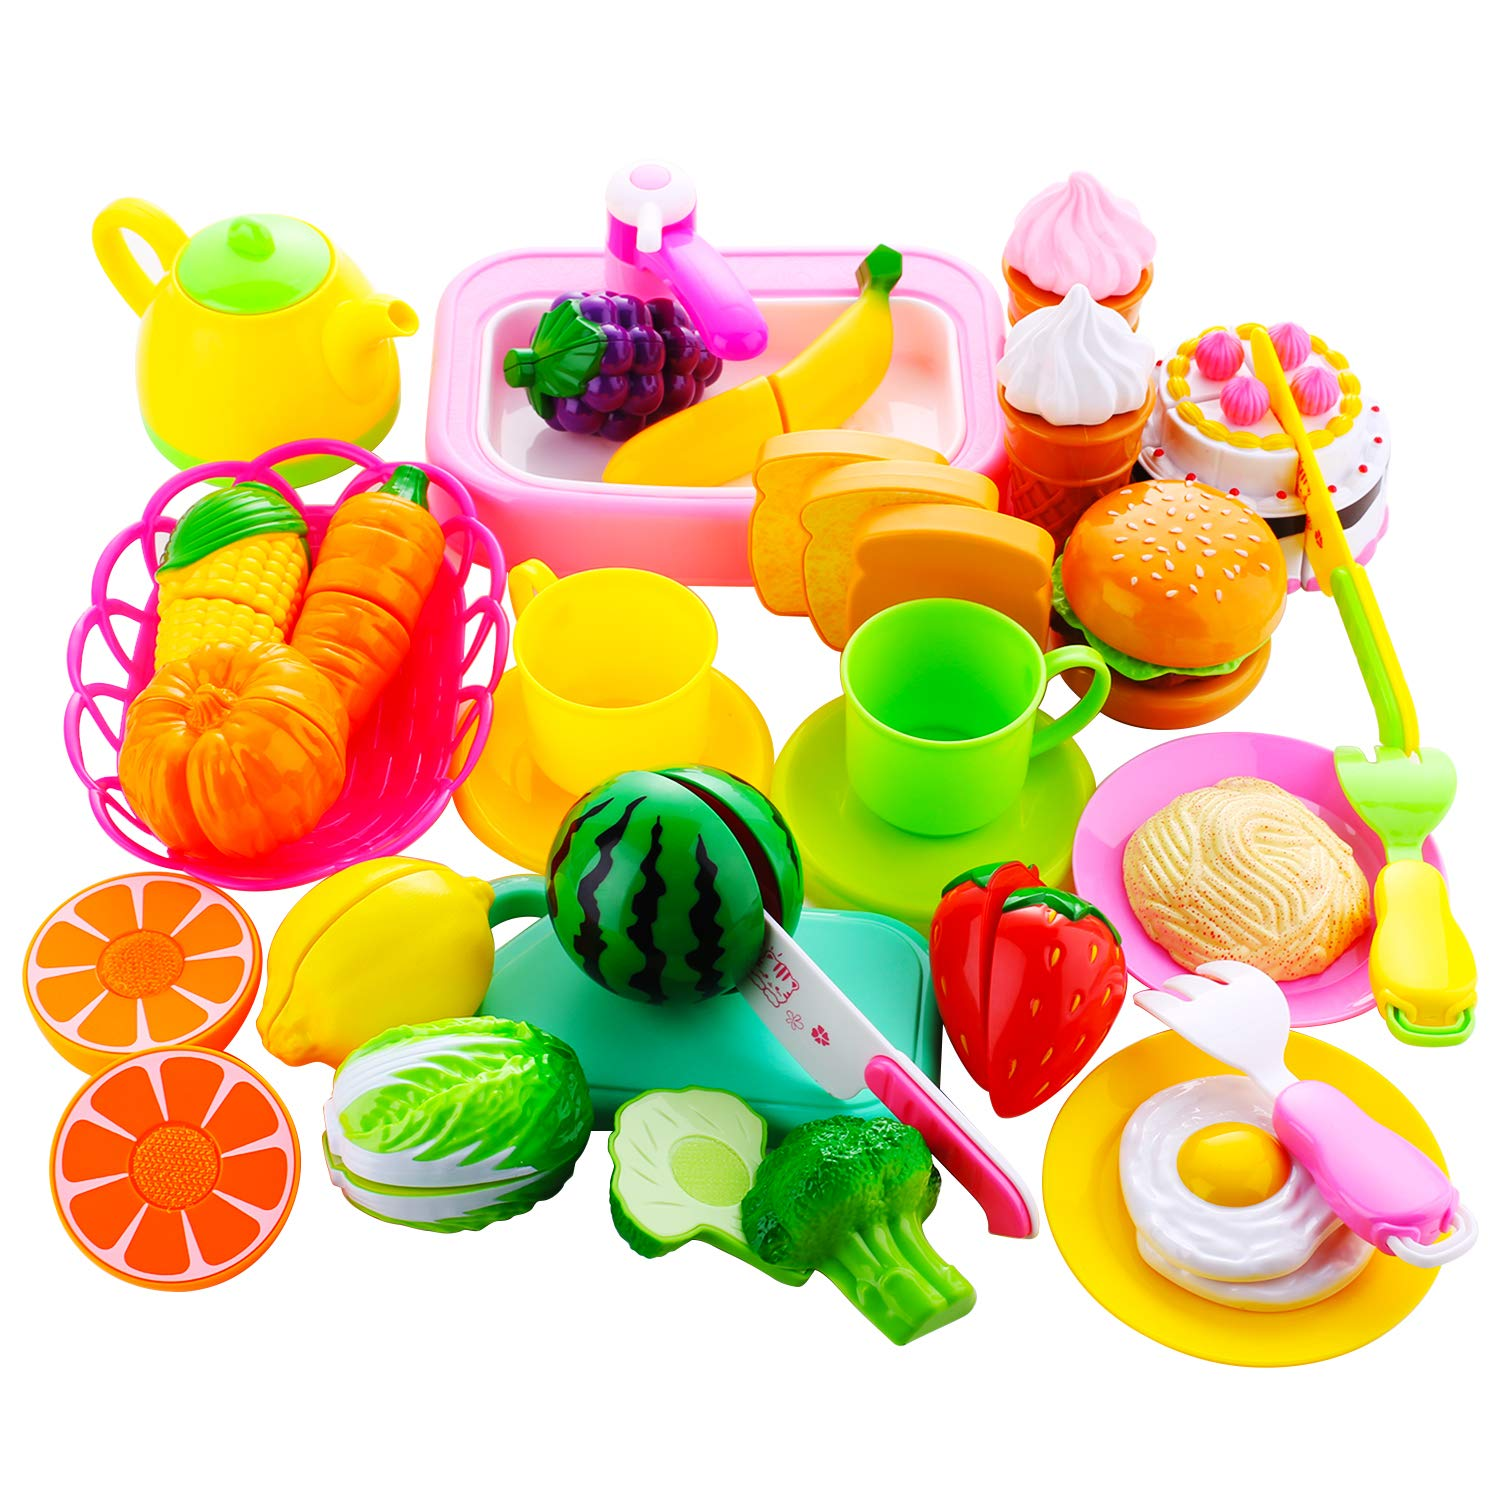 Biulotter 57 Pcs Play Food Set, Durable Pretend Food Playset Kitchen Cooking Set Plastic Foods Vegetable Toy Set for Kids Toddlers Play Kitchen Playset Accessories Toy for Educational Learning by Biulotter